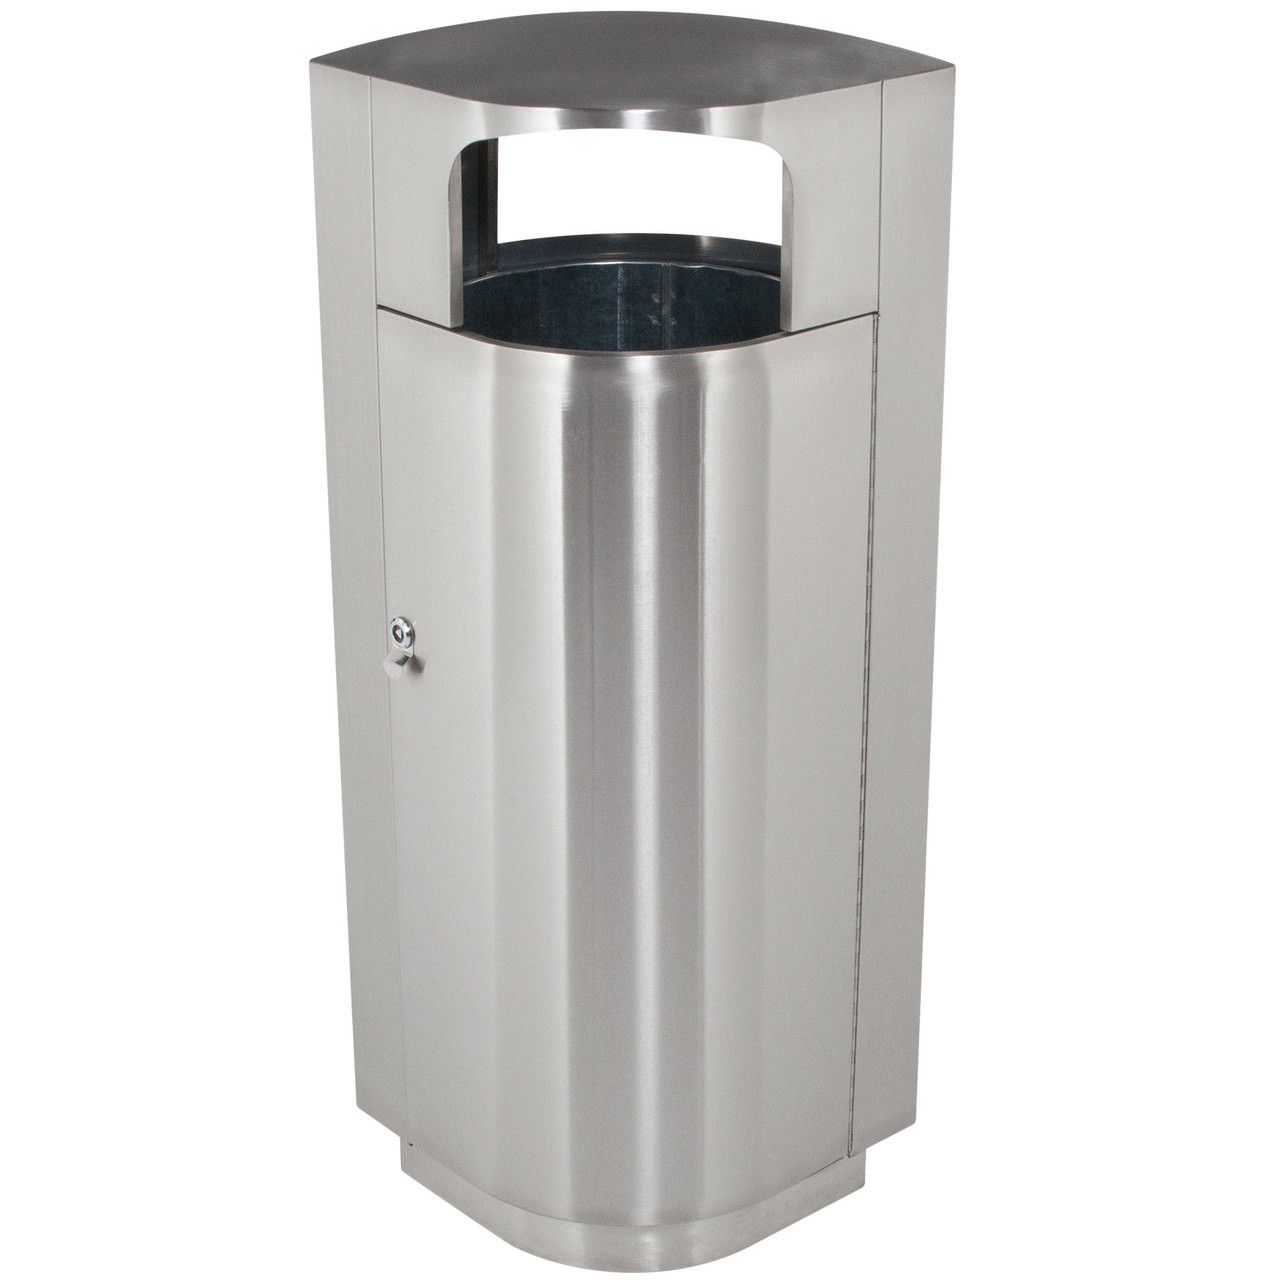 20 Gallon Leafview 1 Locking Stainless Steel Lockable Trash Can 782029